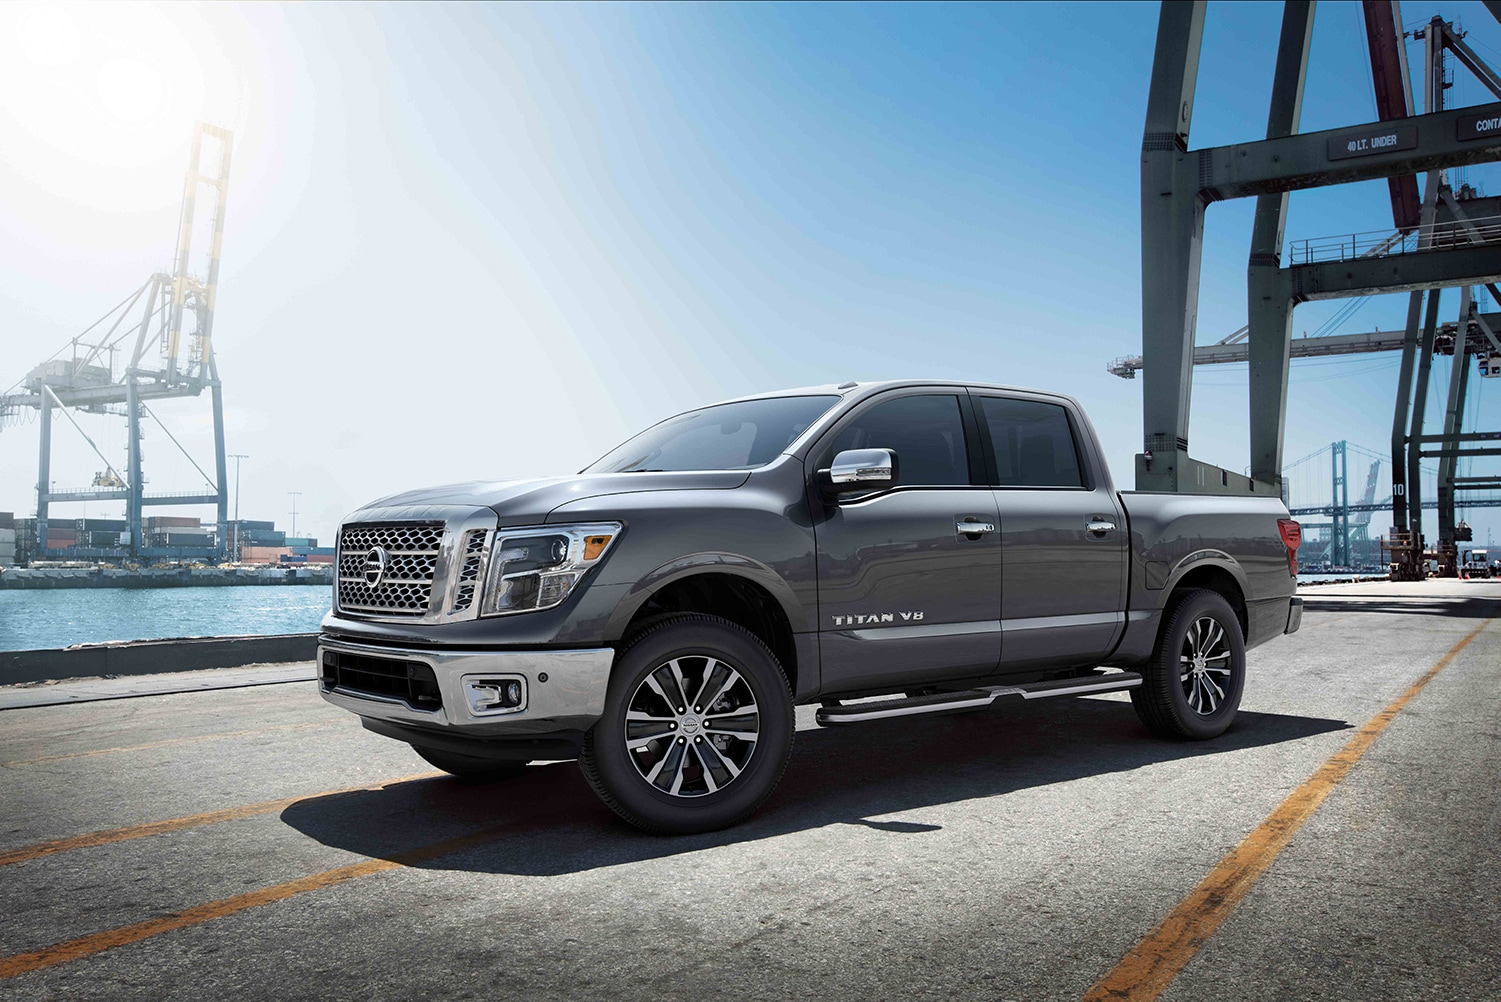 Boch Nissan South is a Family Owned Dealership near Pawtucket, RI | Gray 2020 Nissan Titan parked by harbor